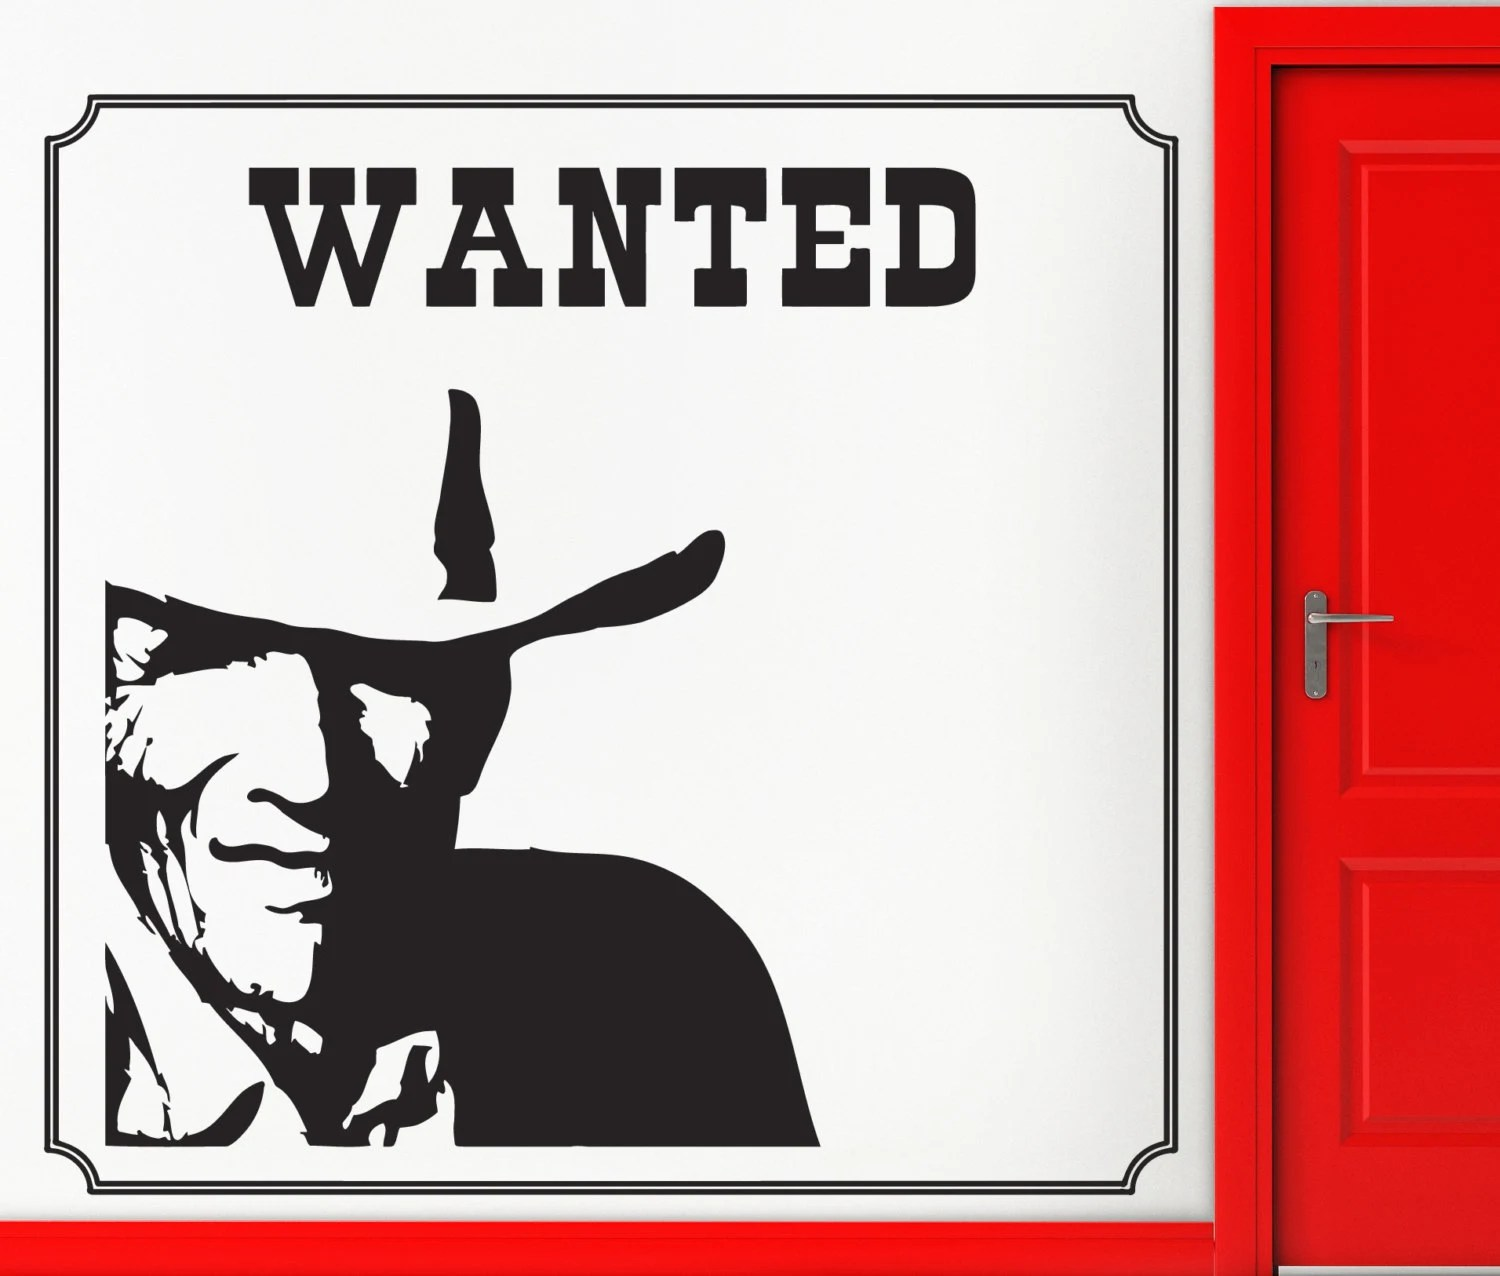 Stickers Exterieur Personnalisé Wall Stickers Vinyle Autocollant Wanted Police Criminel Maison